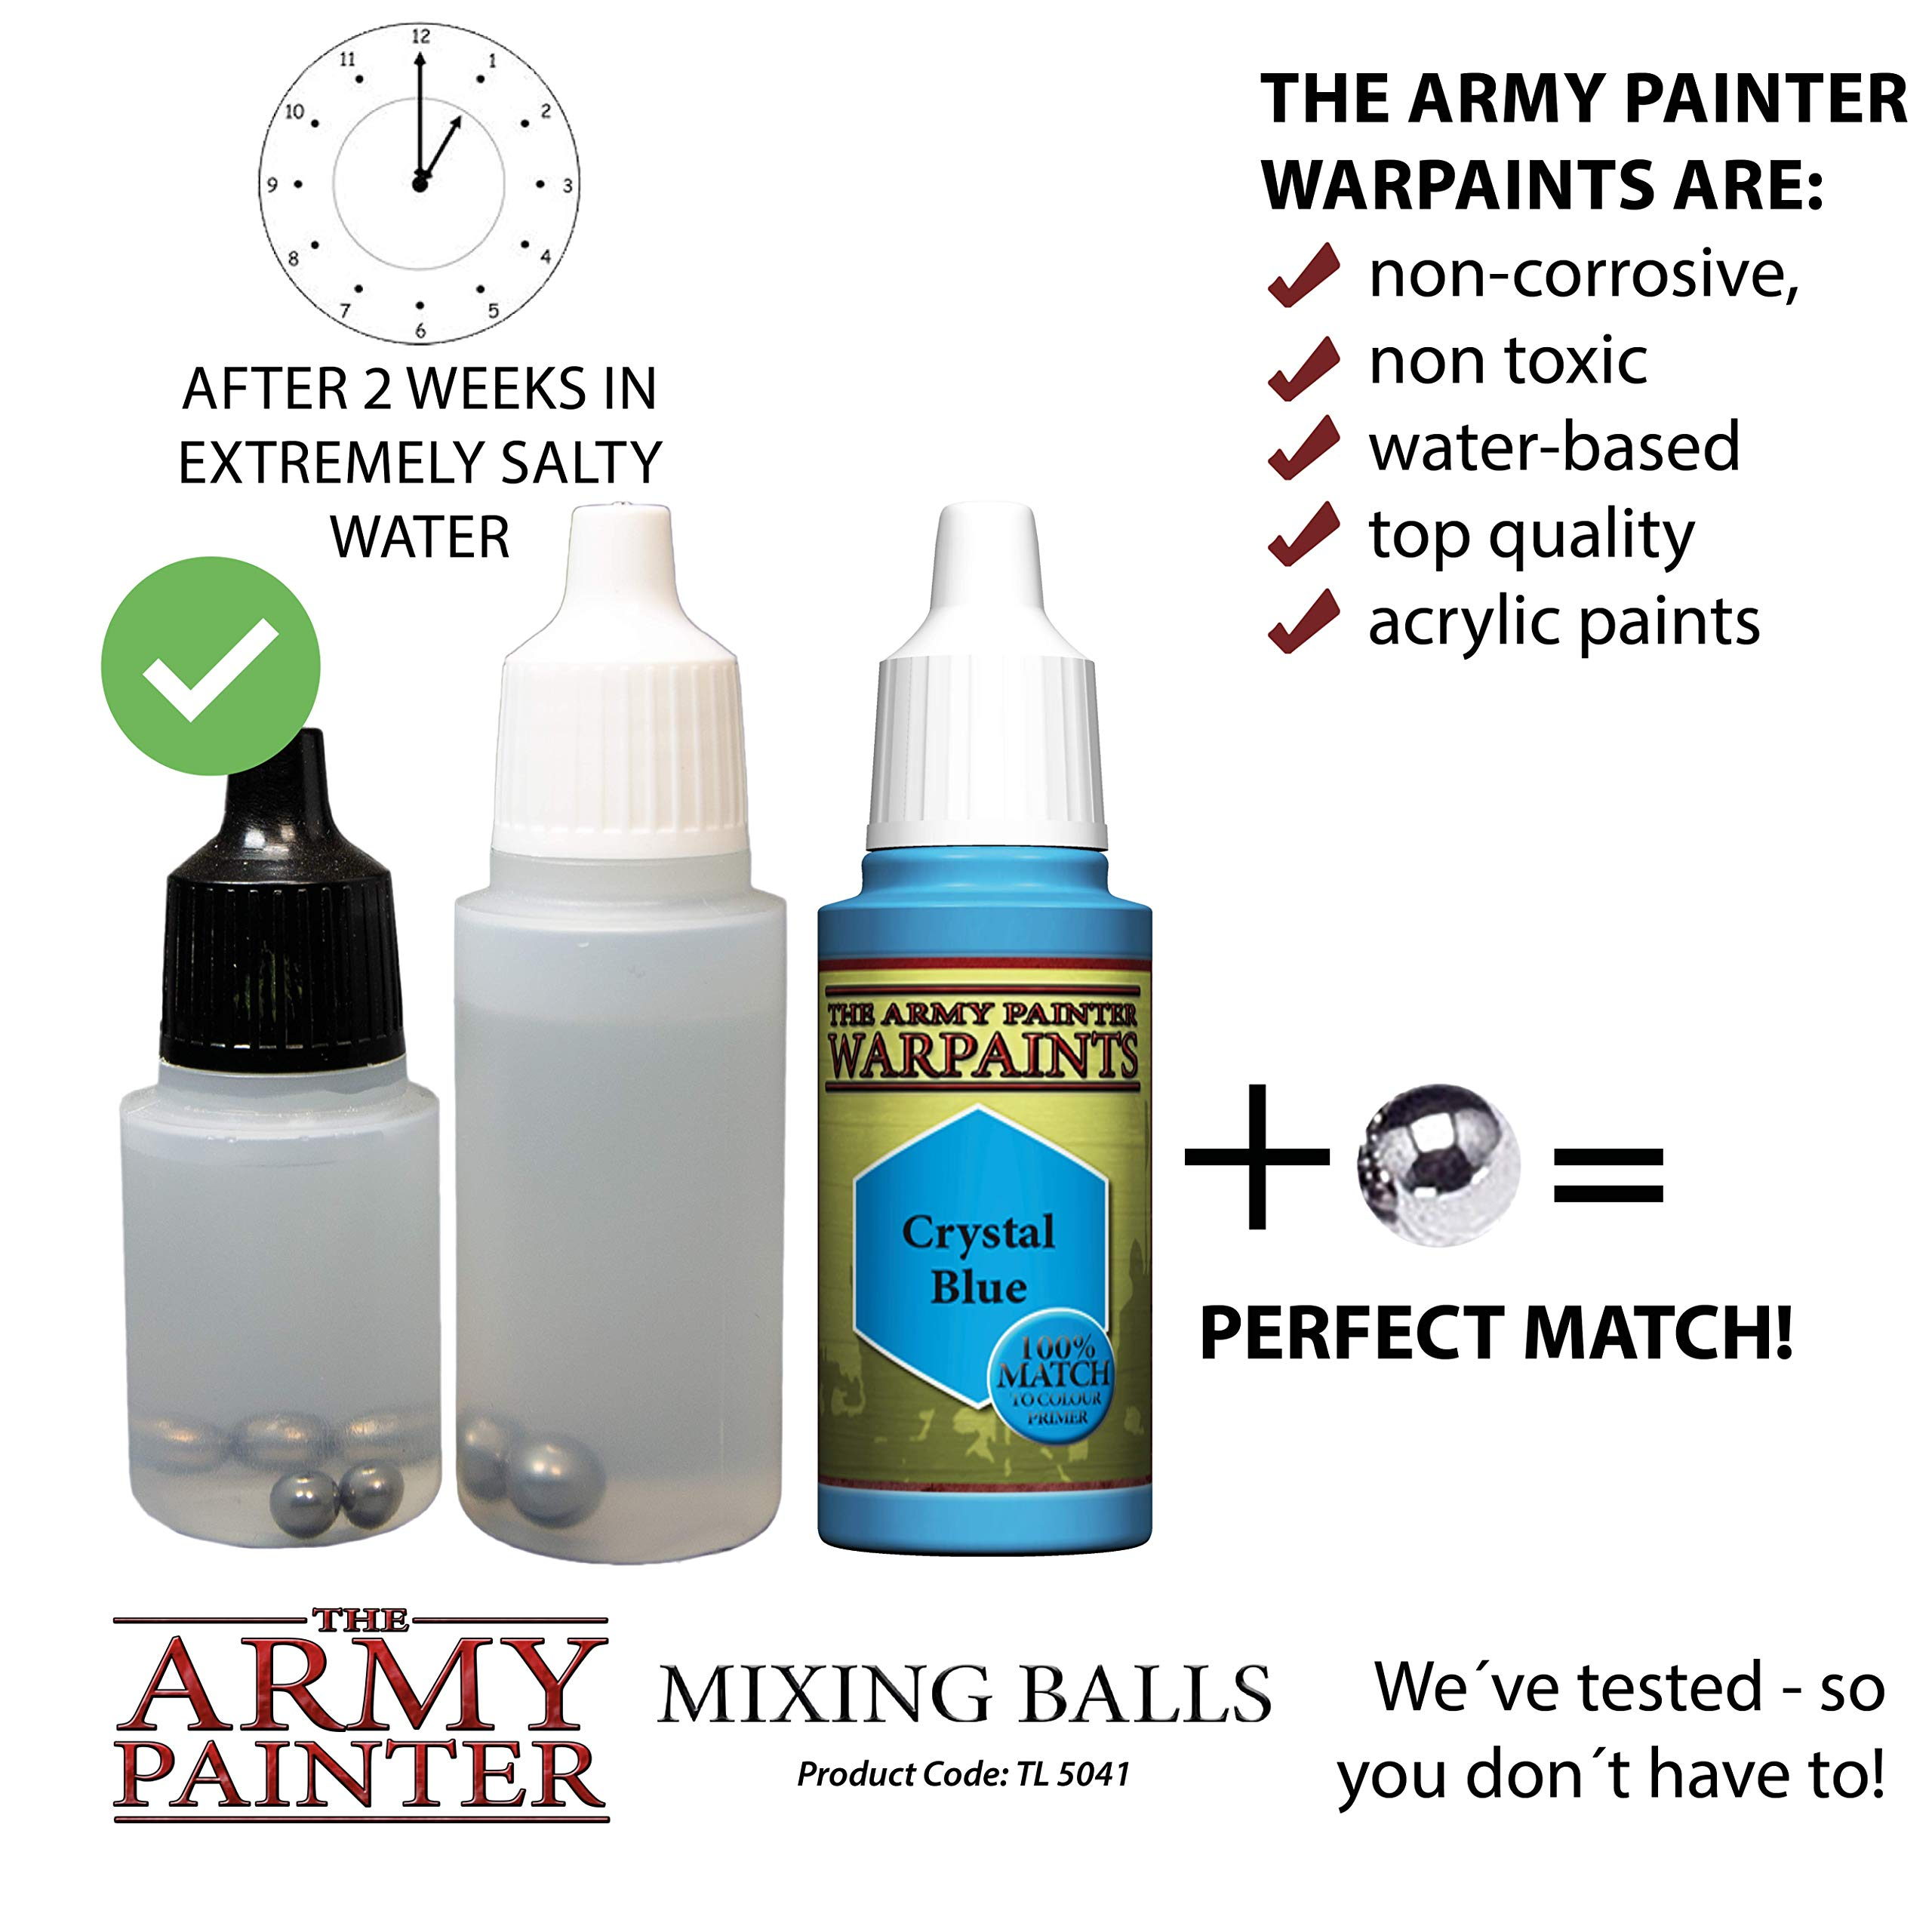 The Army Painter Paint Mixing Balls - Rust-proof Stainless Steel Balls for Mixing Model Paints - Stainless Steel Mixing Agitator Balls, 5.5mm/apr. 0.22'', 100 Pcs by The Army Painter (Image #6)